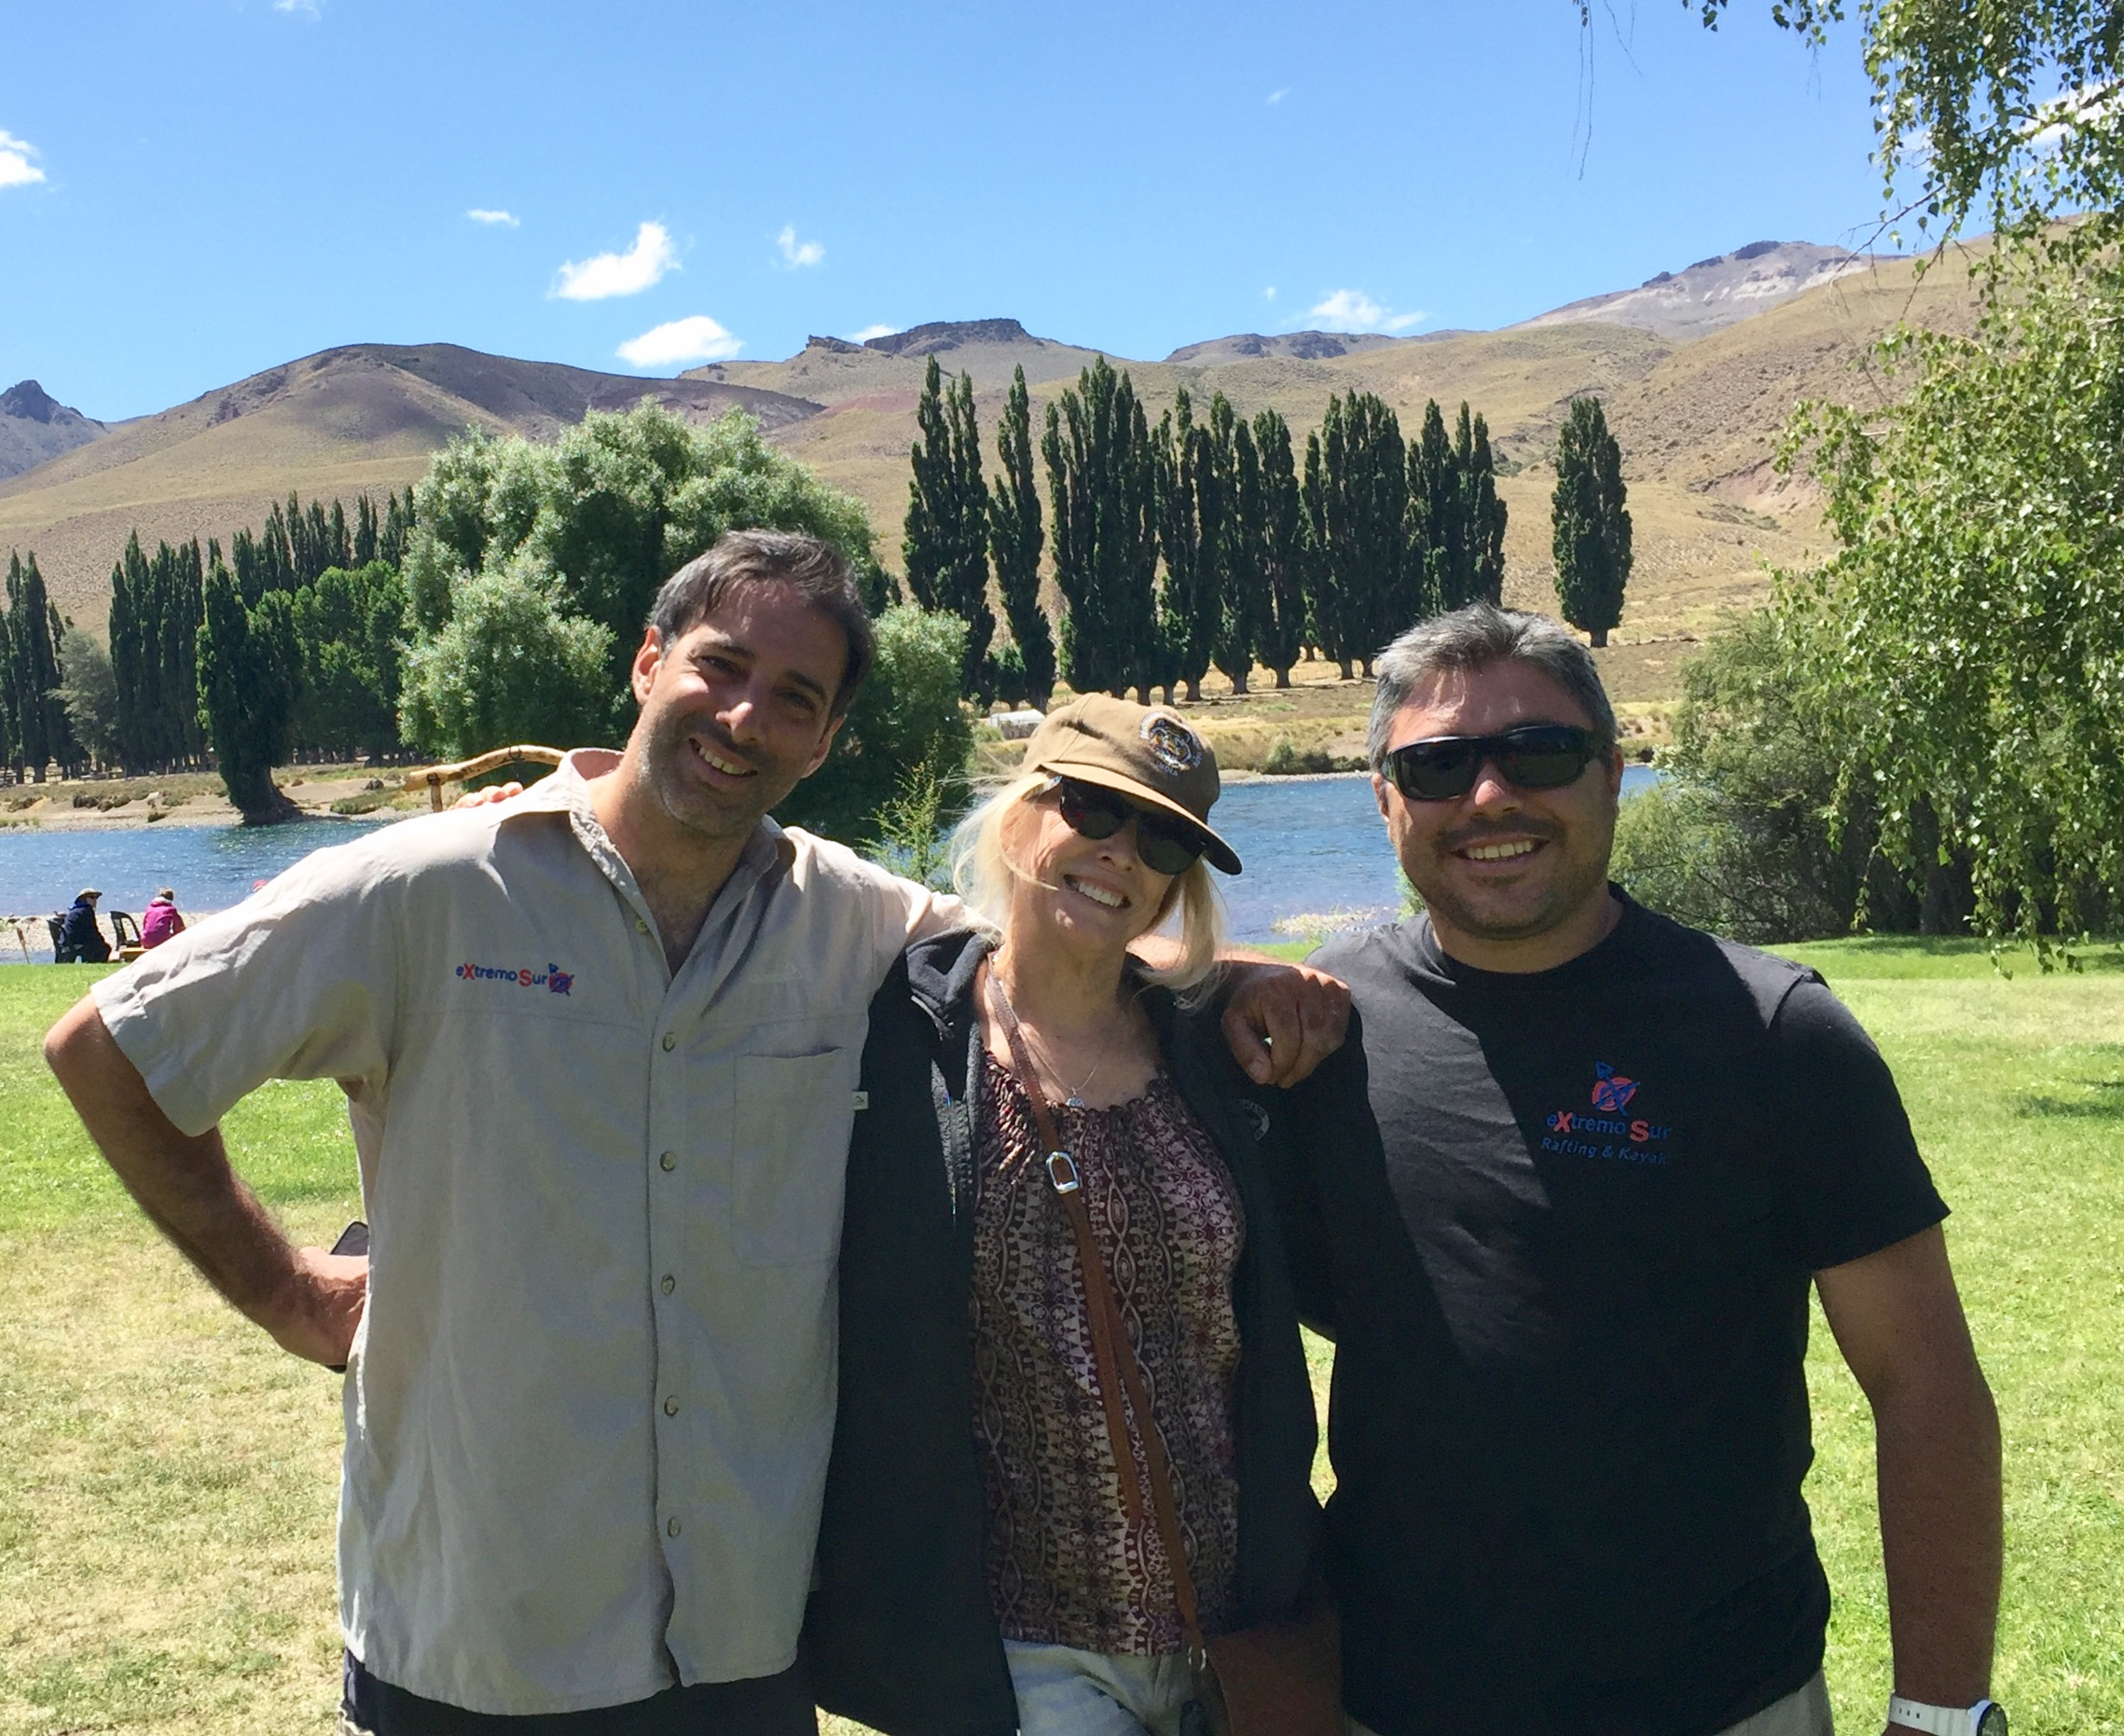 This is me enjoying the company of our two river guides after we landed alongside the Limay River. Behind us you can see some poplar trees, which are not native to Chile, but were planted by ranchers to supply much-needed shade.